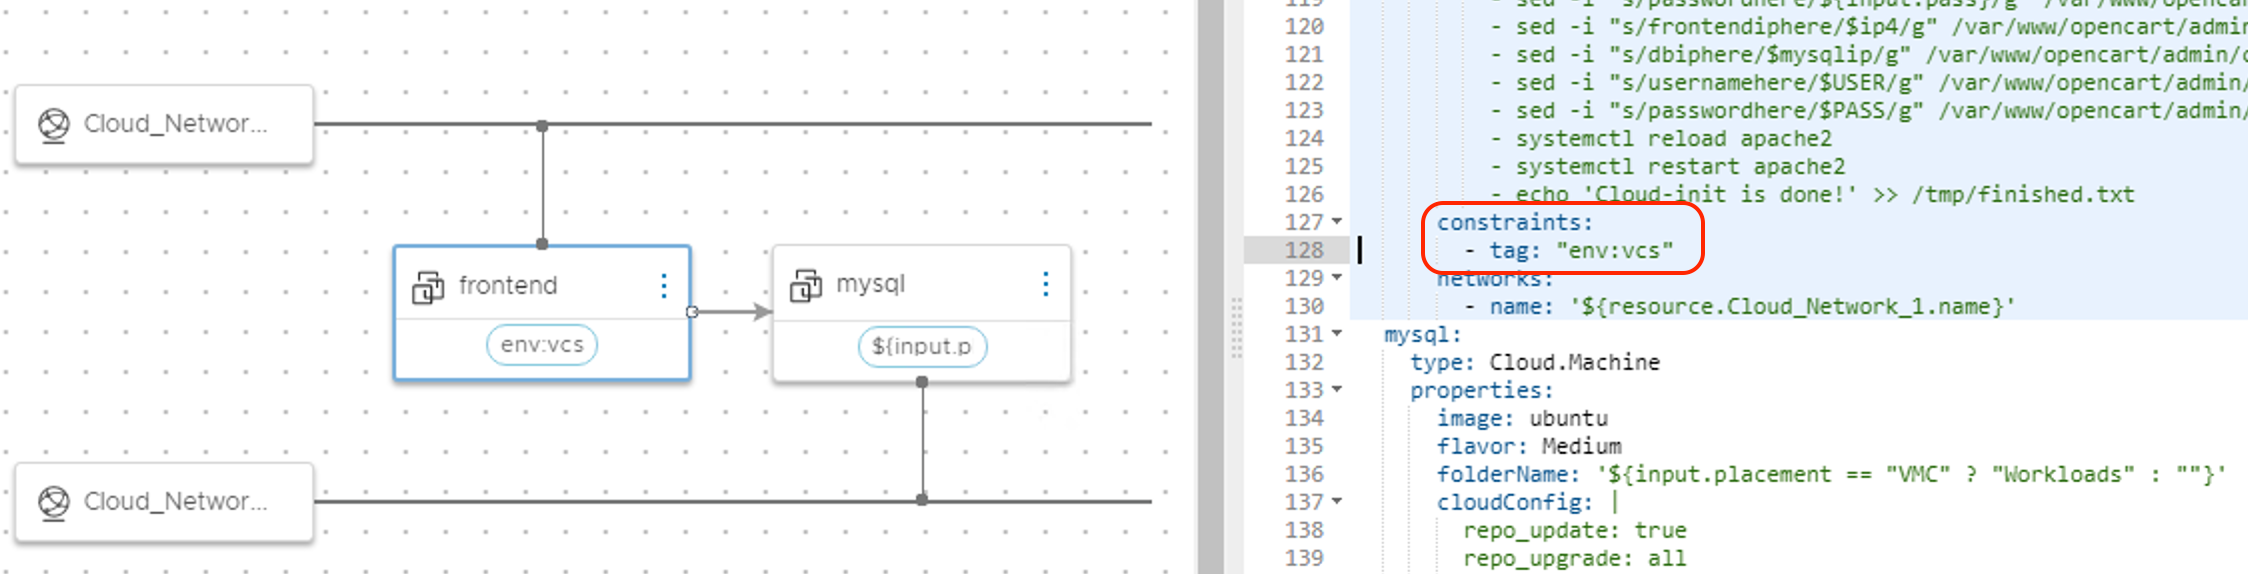 Cloud Assembly constraint tags.